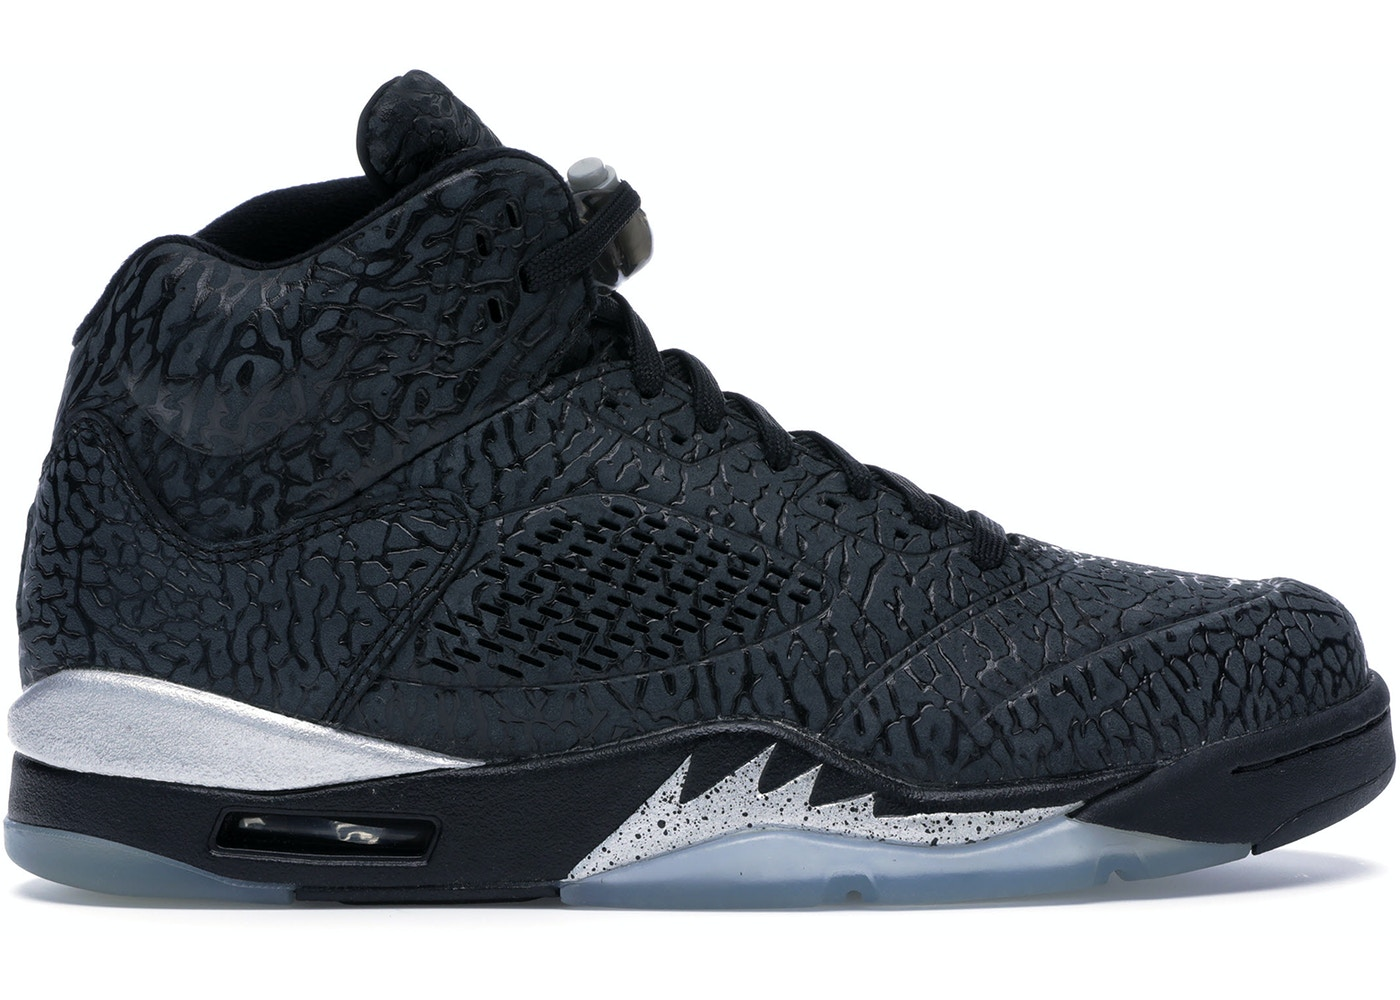 cheap for discount 4fa6d 47557 Jordan 5 Retro 3Lab5 Black Silver - 599581-003